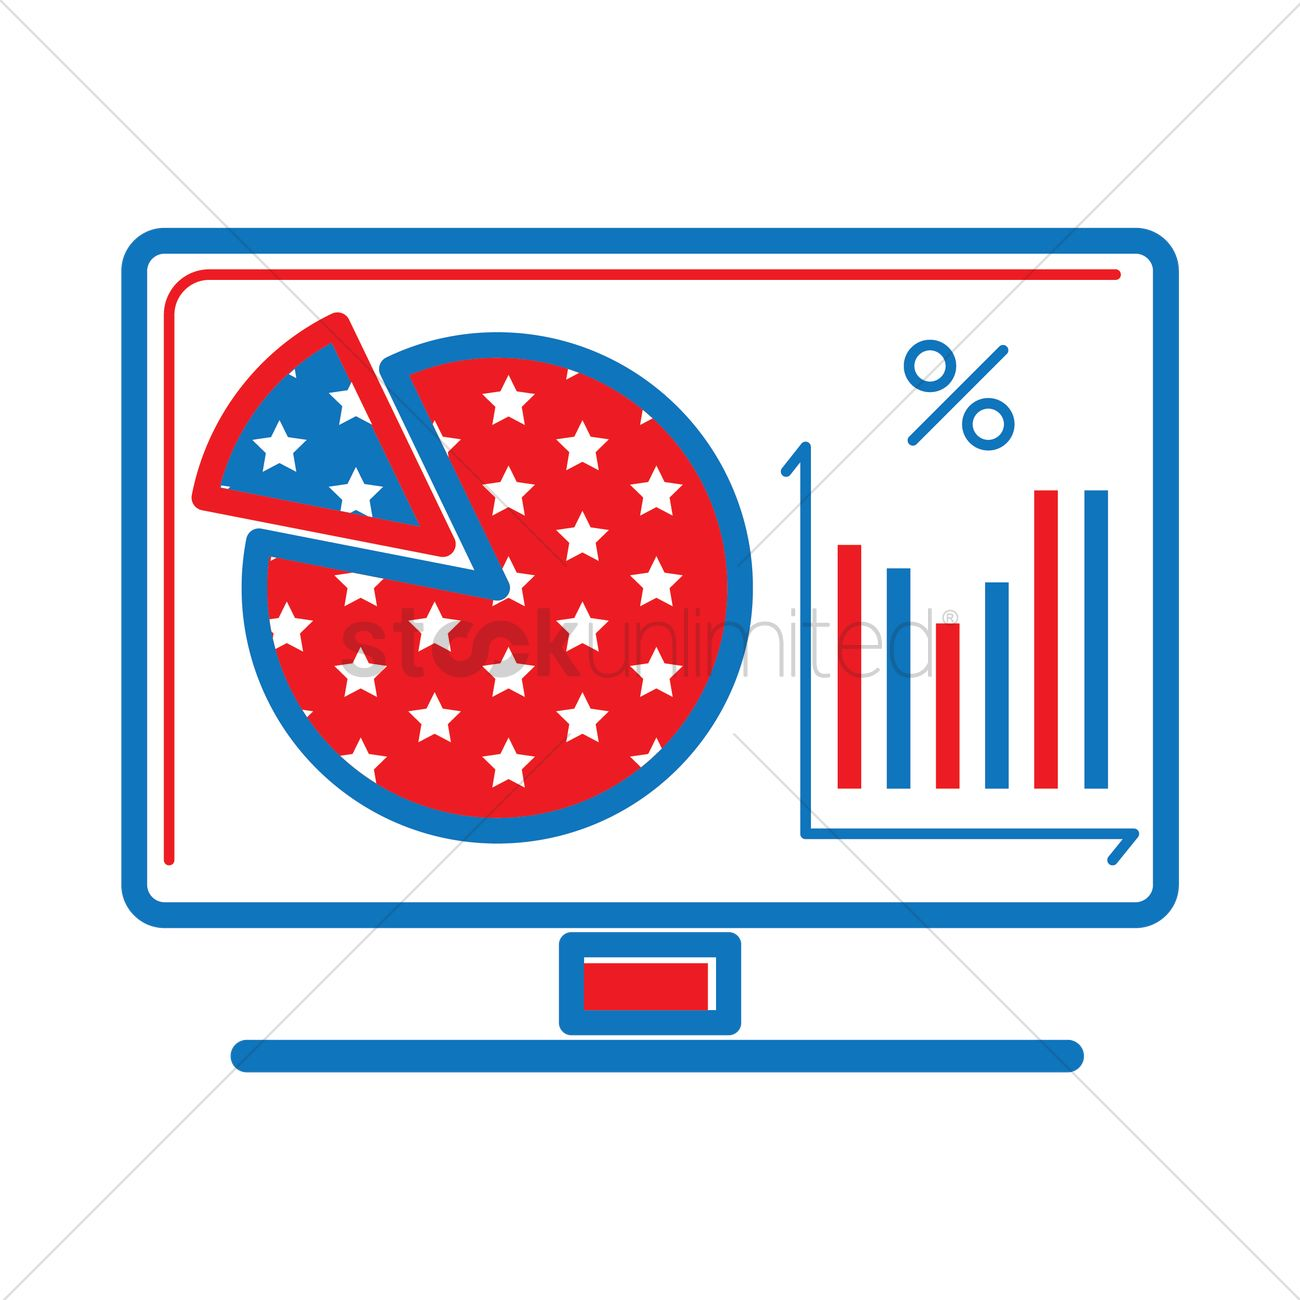 Monitor showing pie chart and bar graph vector image 1557614 monitor showing pie chart and bar graph vector graphic nvjuhfo Gallery